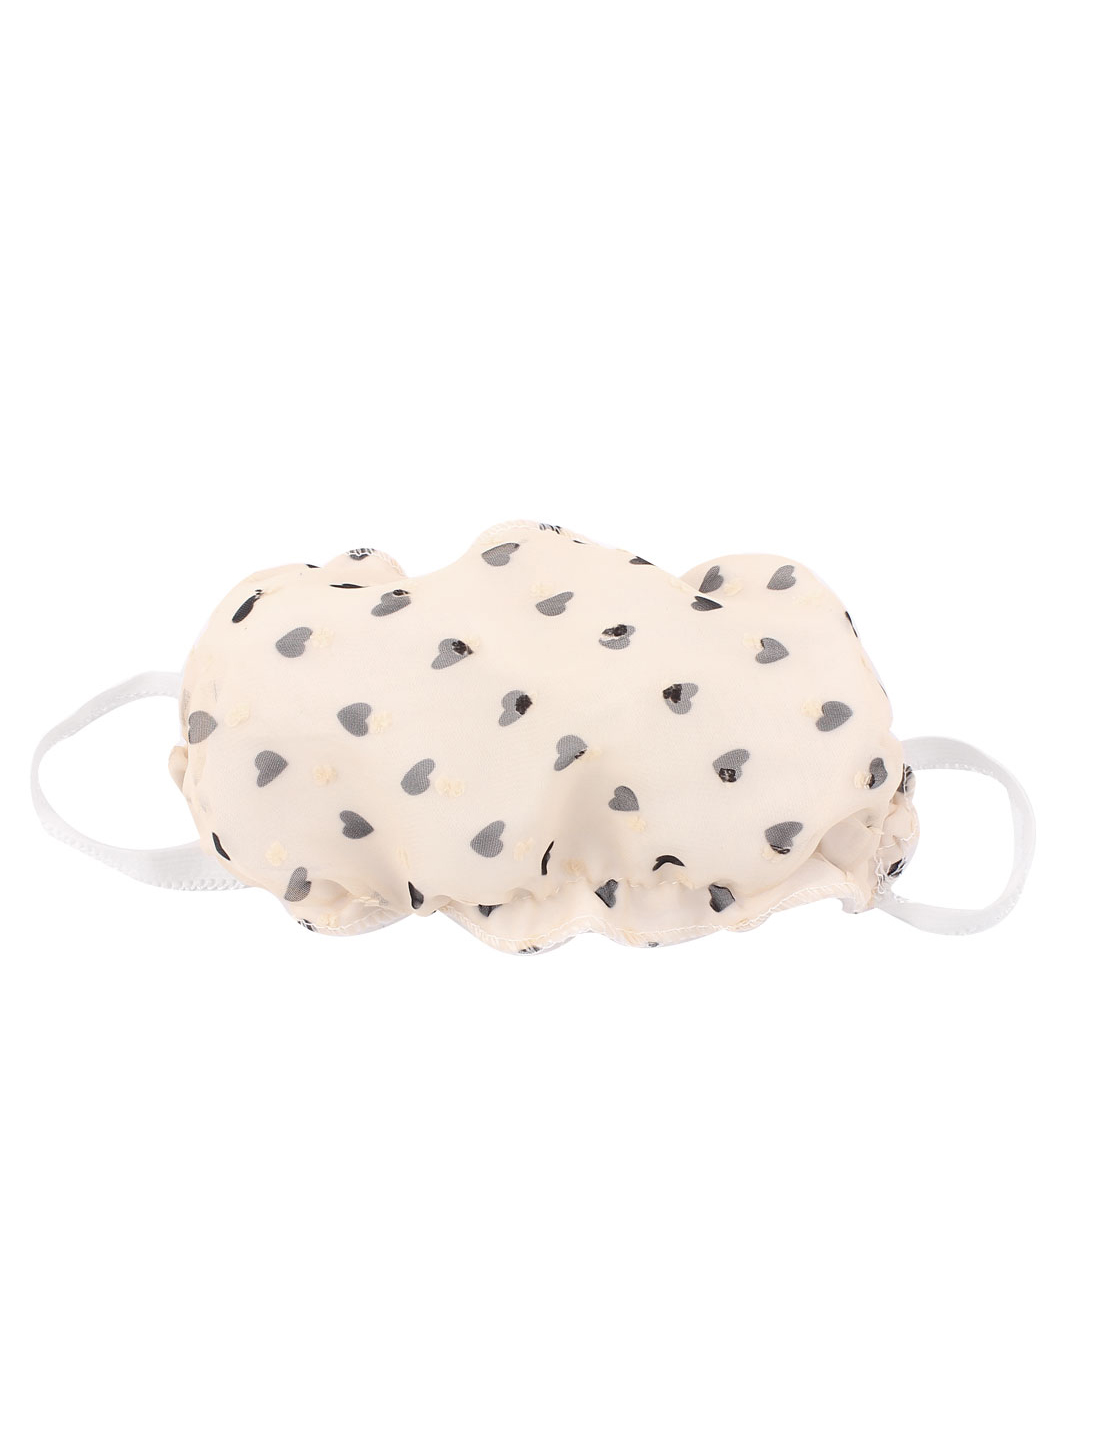 Girls Cotton Blend Anti Dust Earloop Face Mask Mouth Cover Respirator